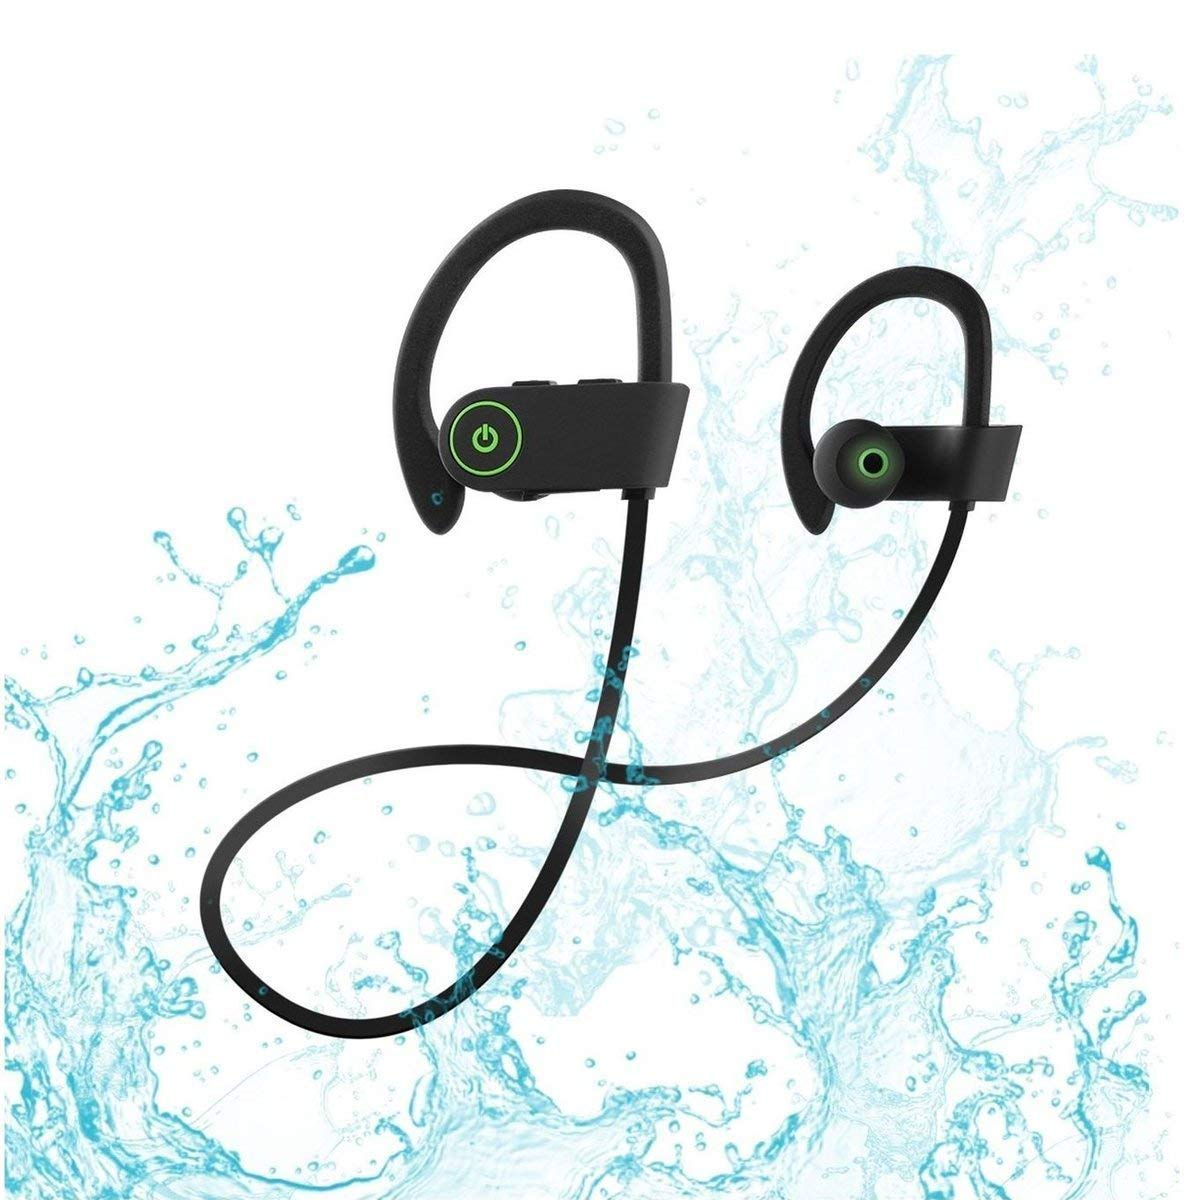 U8 ,black Bluetooth Headset, Sweatproof Wireless, Earbuds Stereo, Wireless Earbuds Compatible with iPhone XS X 8 Plus 8 Plus 7 and Samsung Bluetooth Headphones